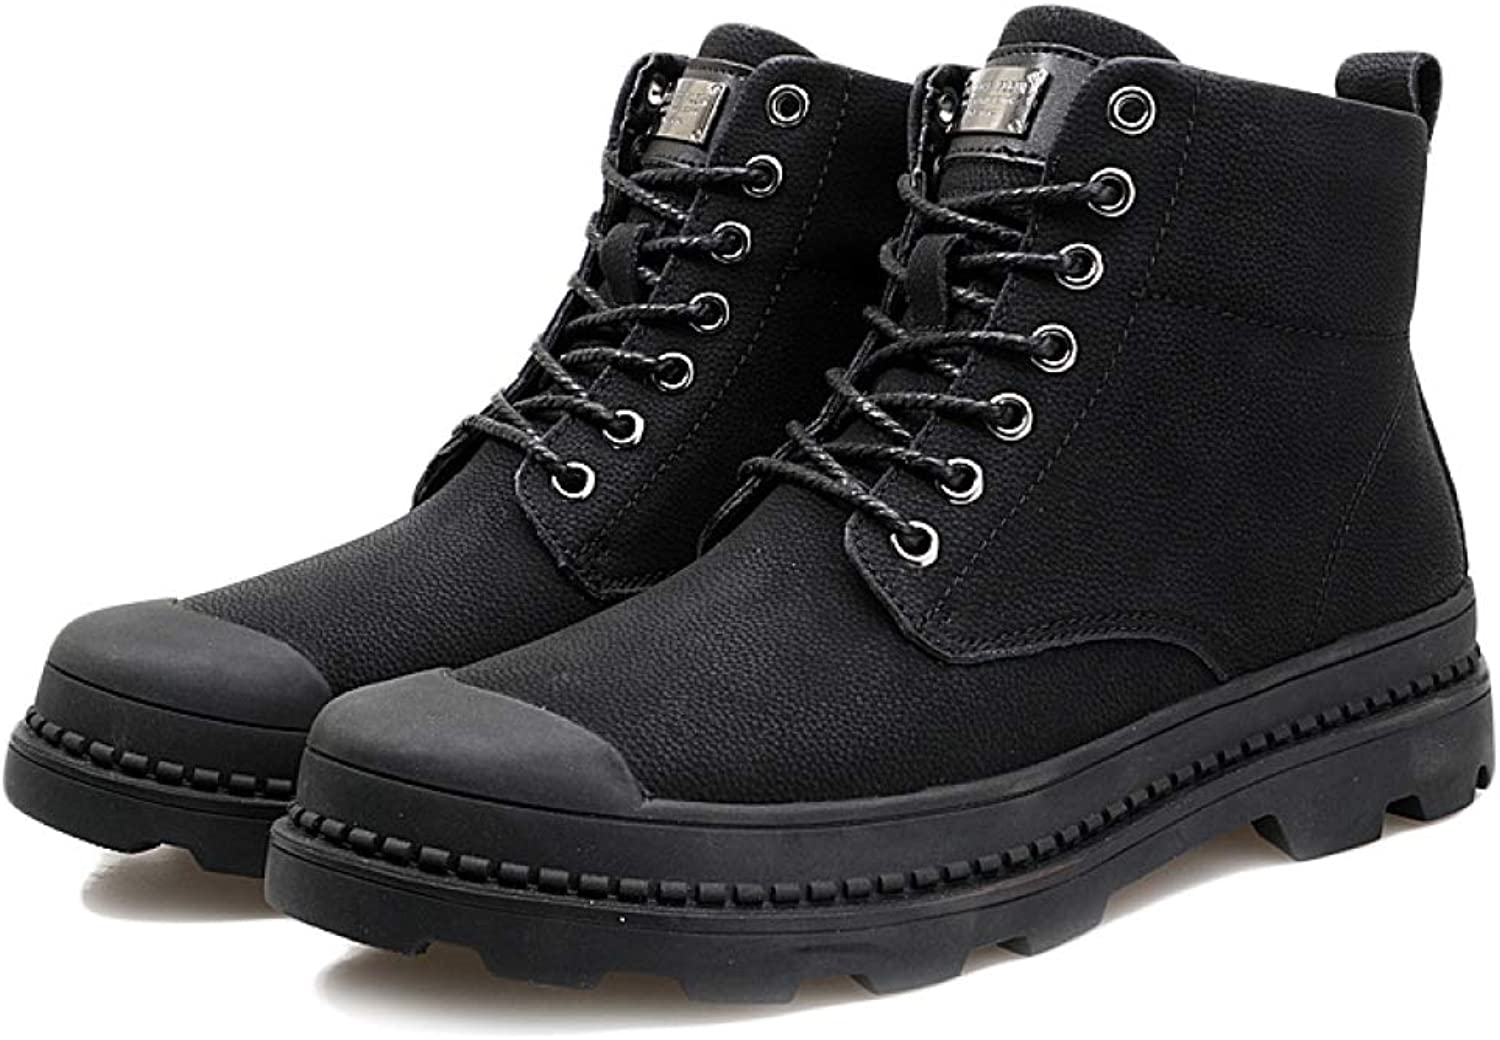 Mens High Help Martin shoes Motorcycle Boots Rubber Sole Work Boots Comfortable Non-Slip Windproof and Warm Casual